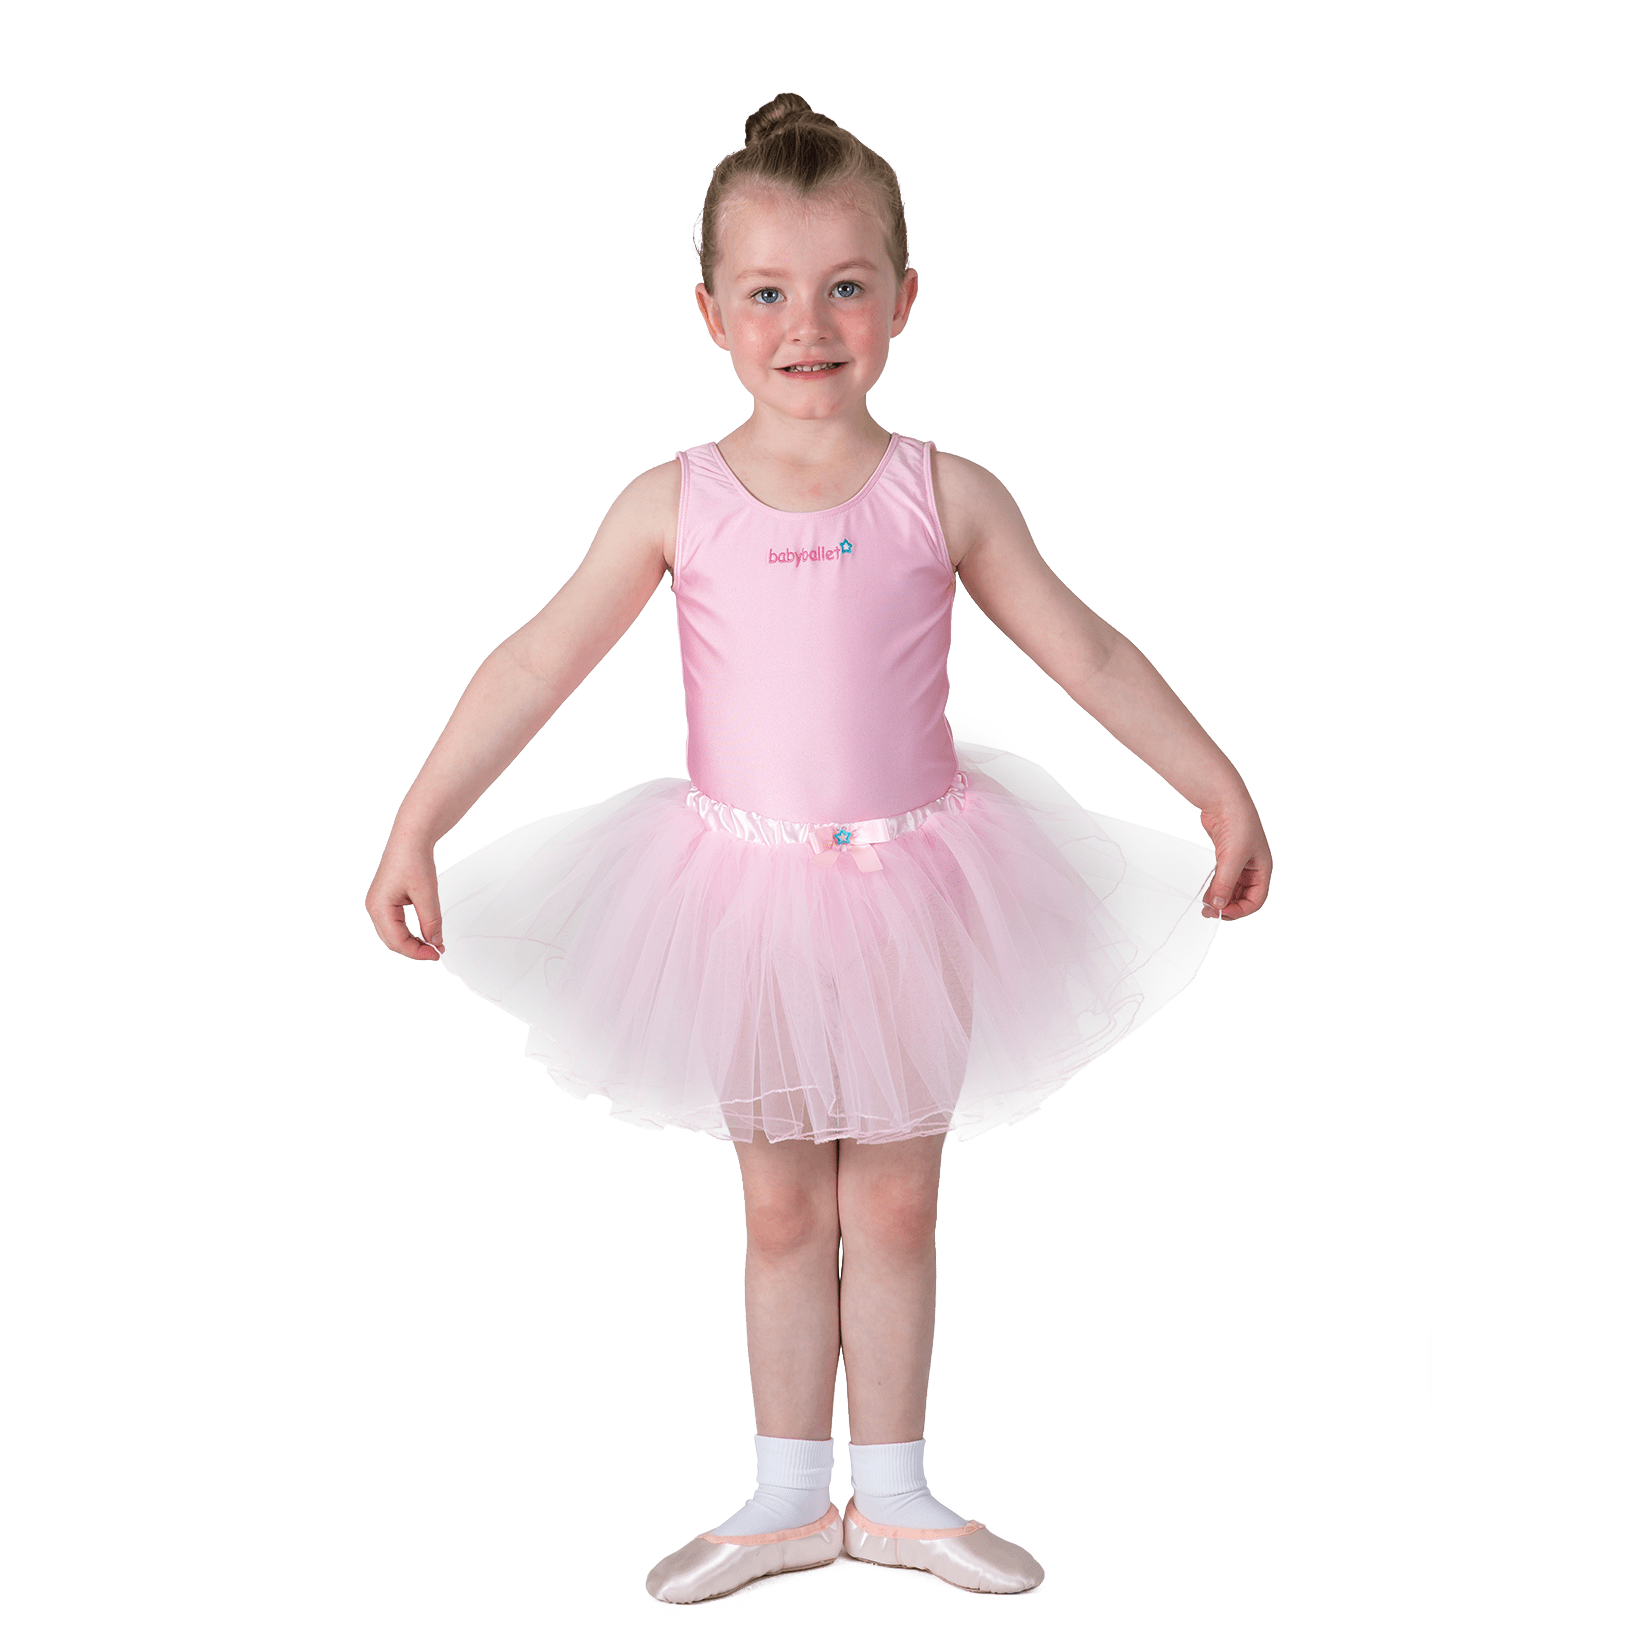 Baby Ballet Shoes Uk